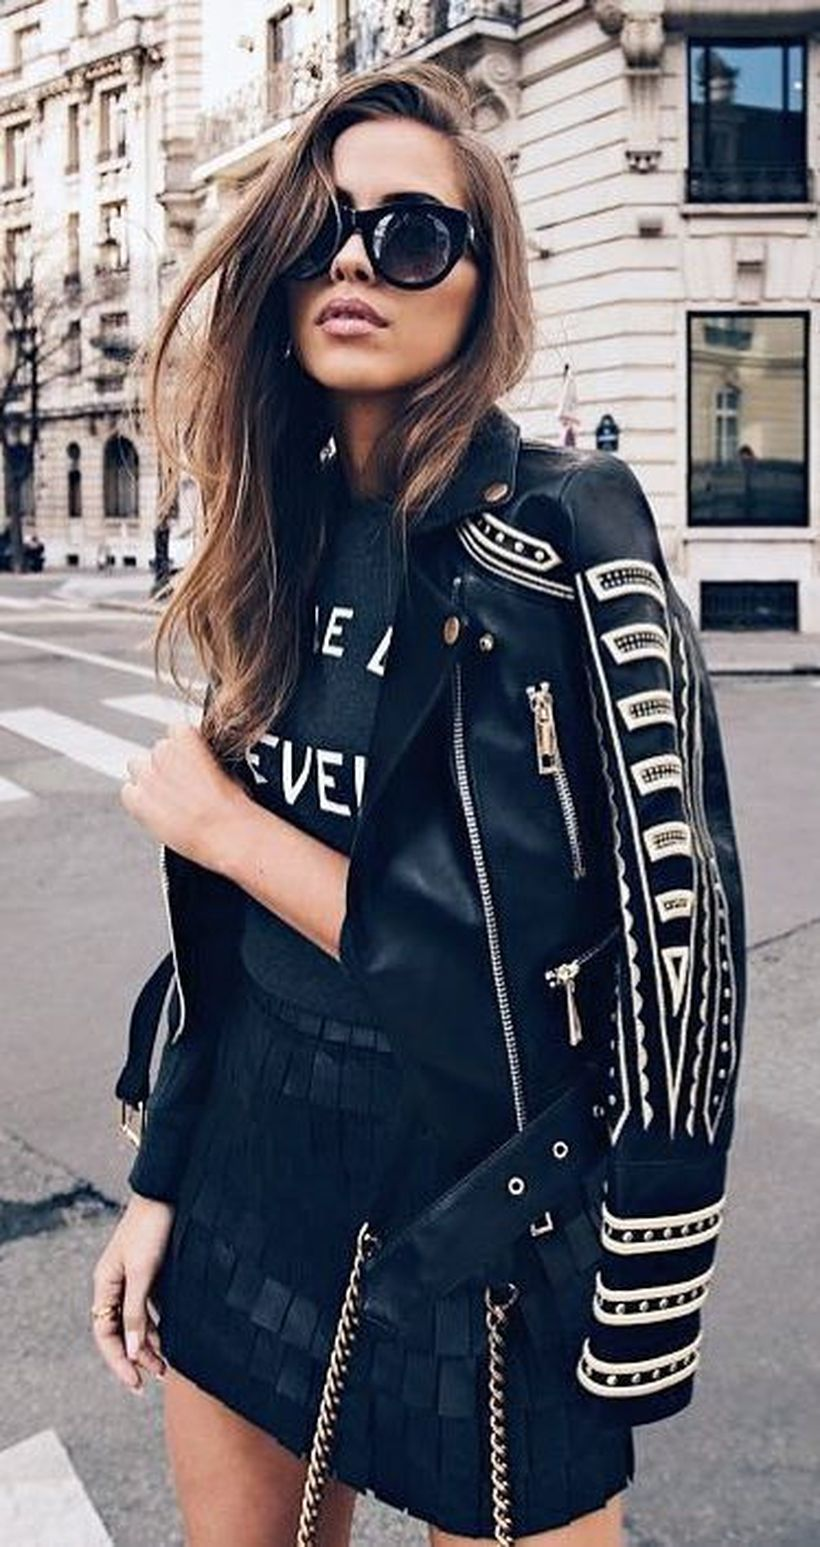 Fashionable skirt outfits ideas that you must try 22